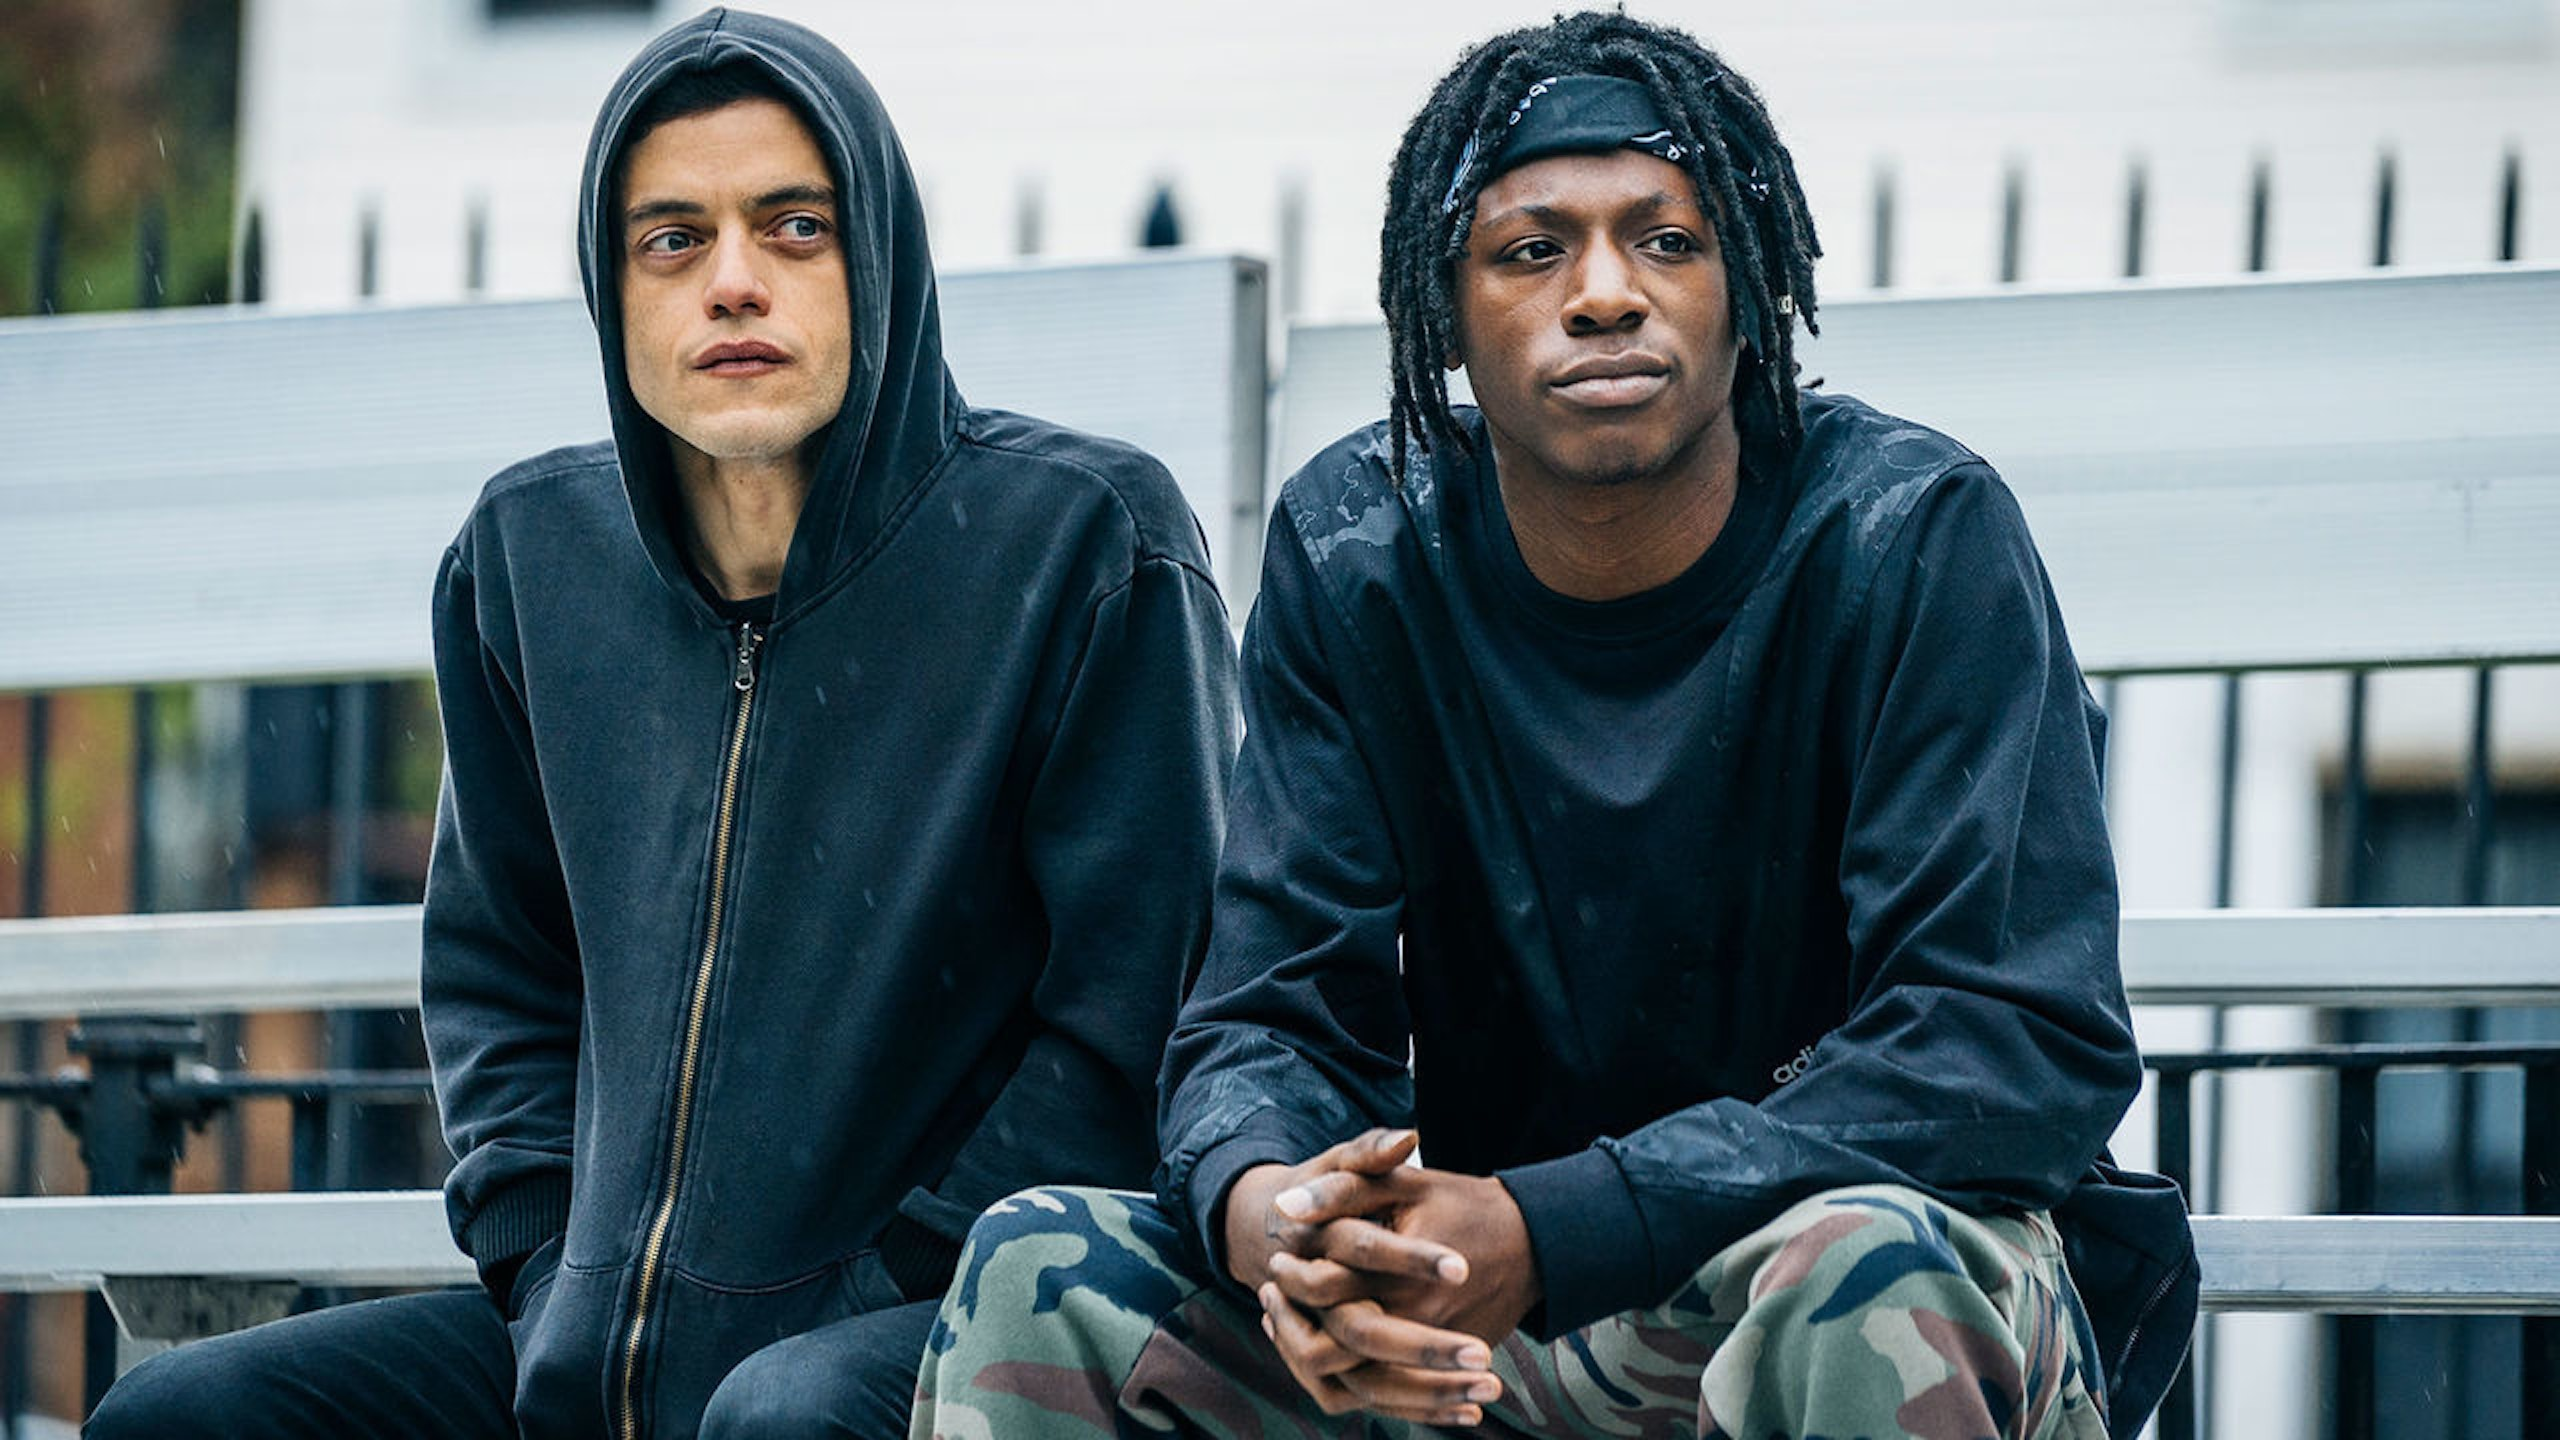 Elliot (left, played by Rami Malek) and Leon (right. played by Joey Badass) in Season 2 of 'Mr. Robot.'